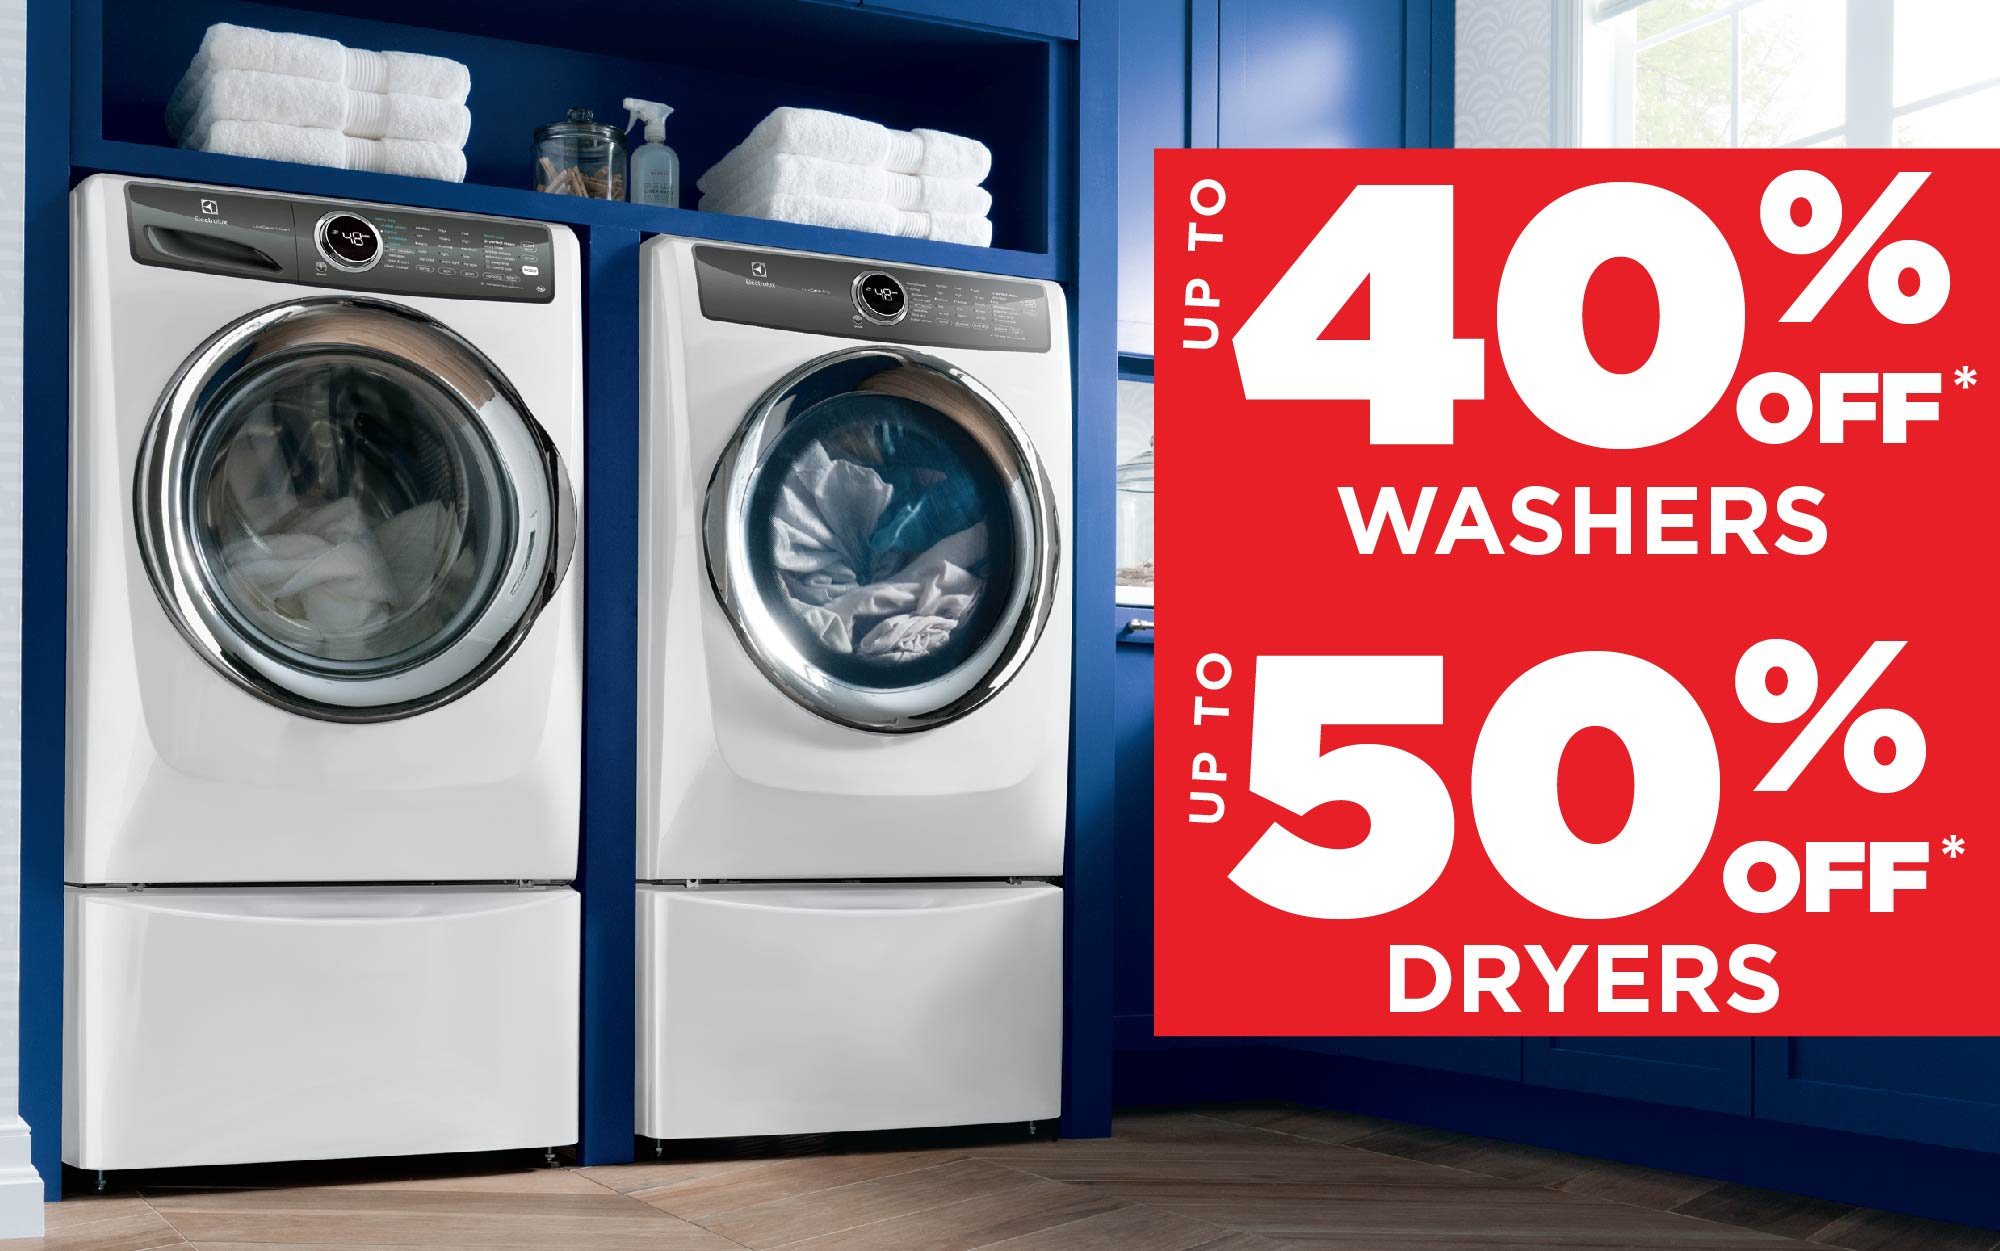 Save on Washers & Dryers!